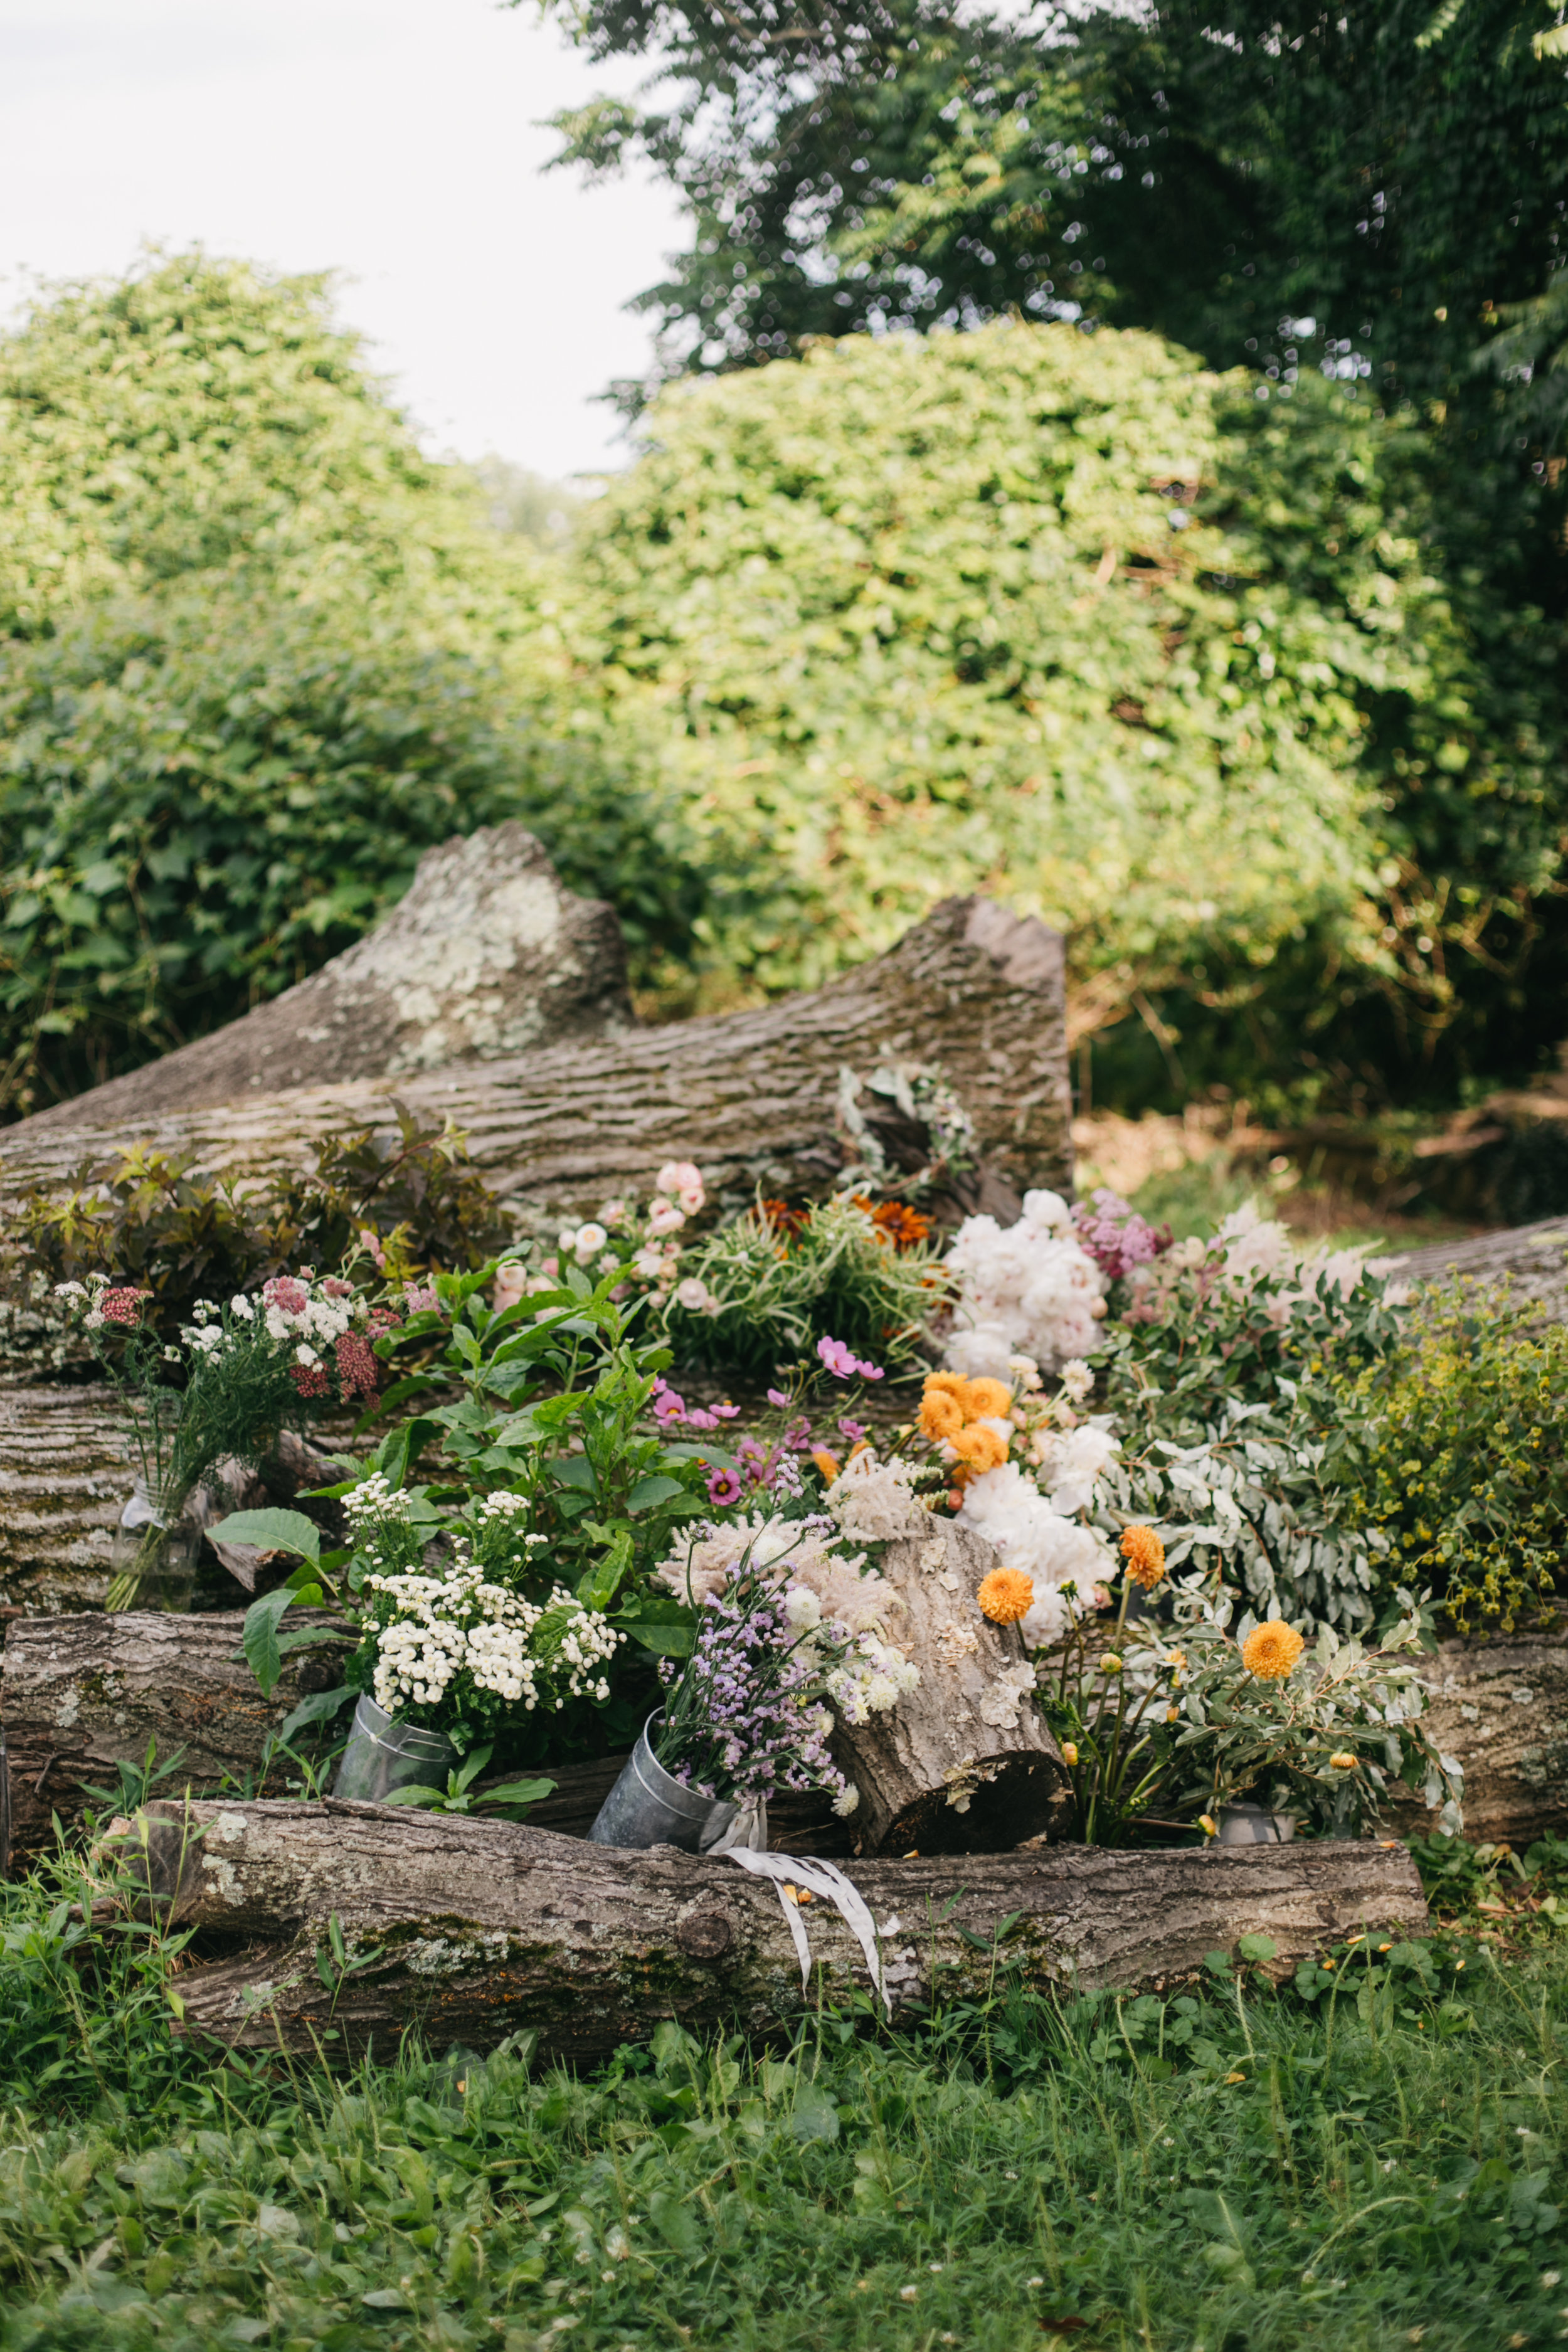 Darling and Daughters Florals, Baltimore, Washington DC, Events, Monthly, Flower Subscriptions, Small Events, Custom Flowers, Summer Butterbee Farm-3.jpg